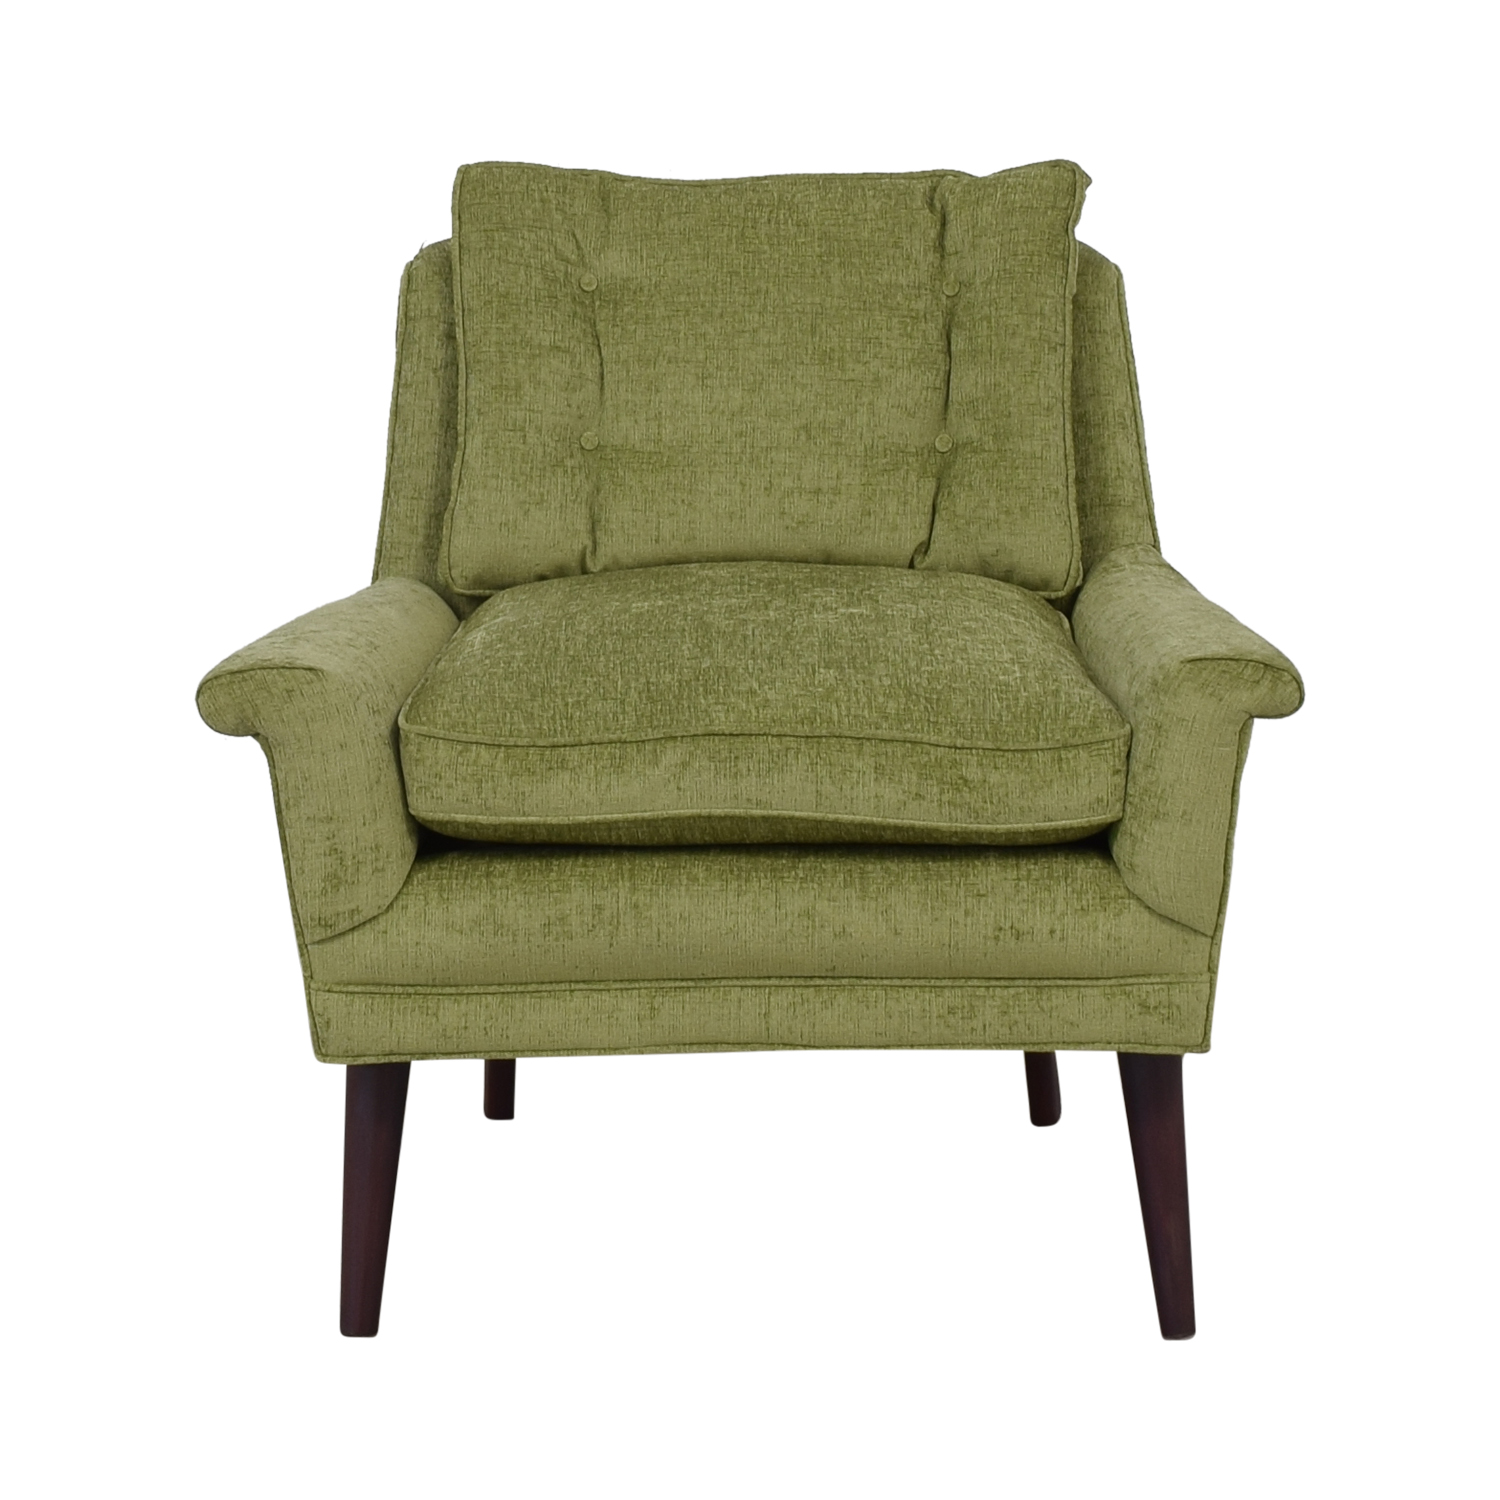 buy Stonebrook Interiors Stonebrook Interiors Mid Century Club Chair online